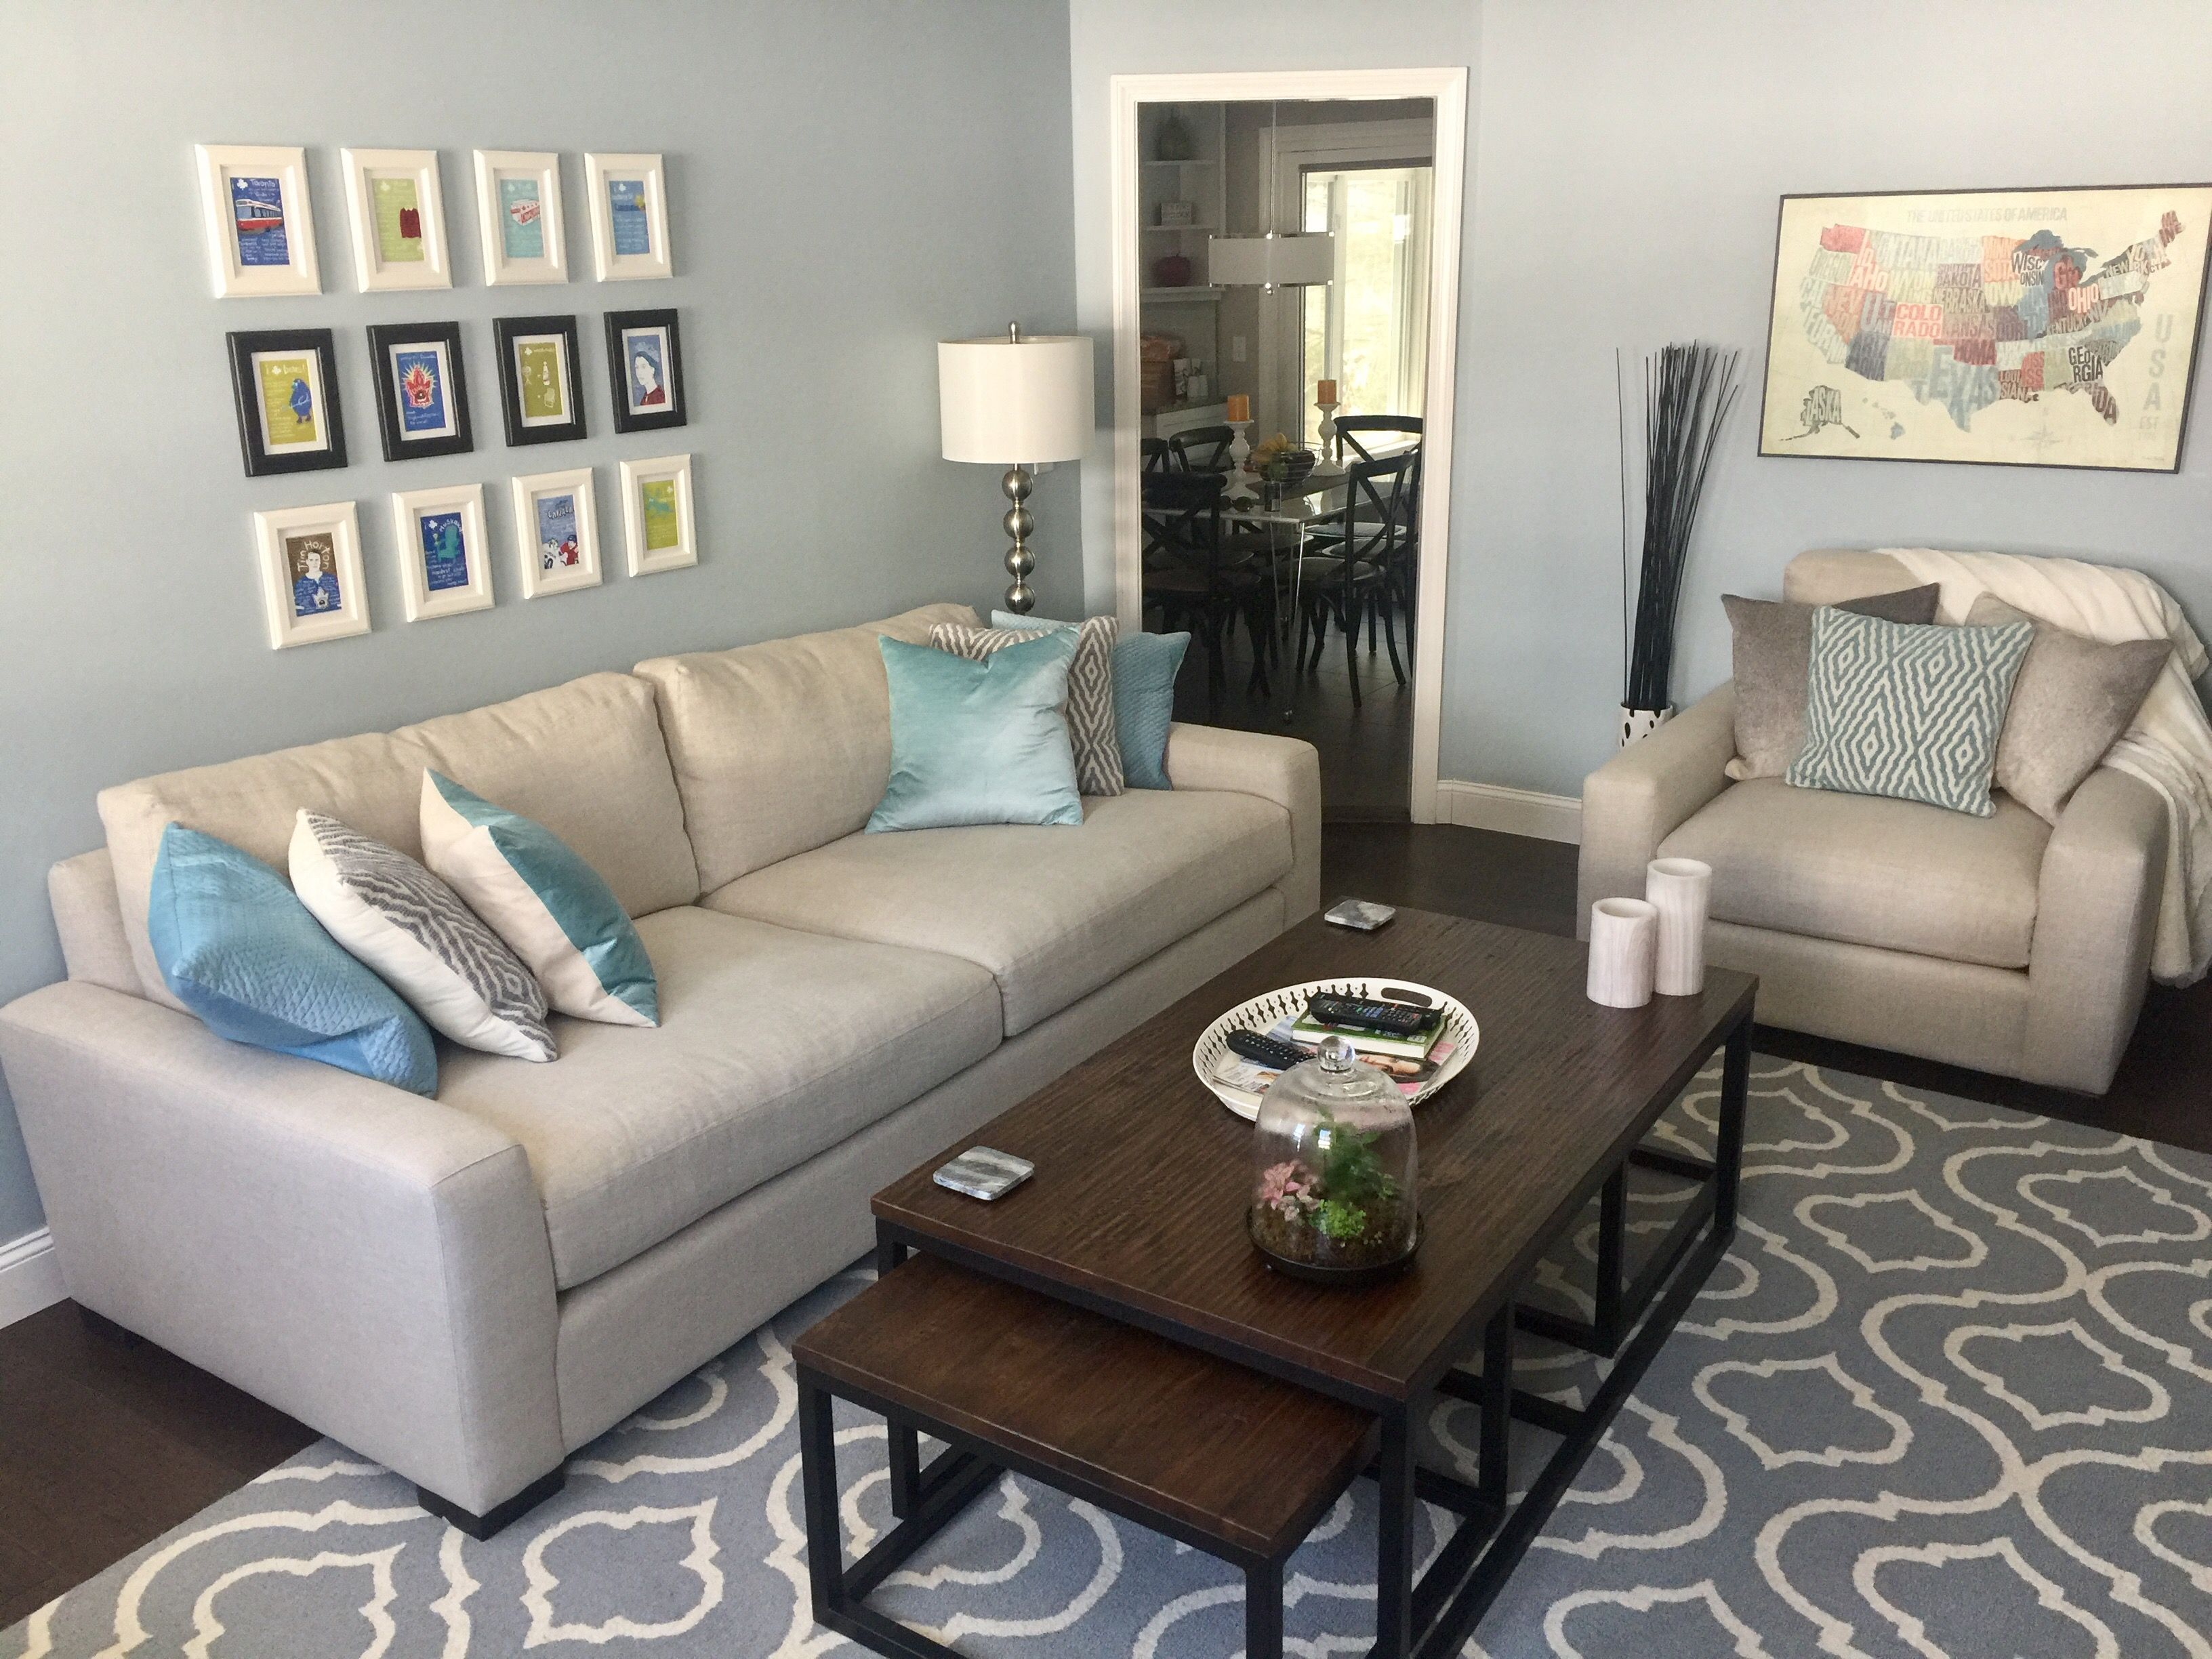 Arhaus remington sofa and chair tv room pinterest room arhaus remington sofa and chair parisarafo Image collections